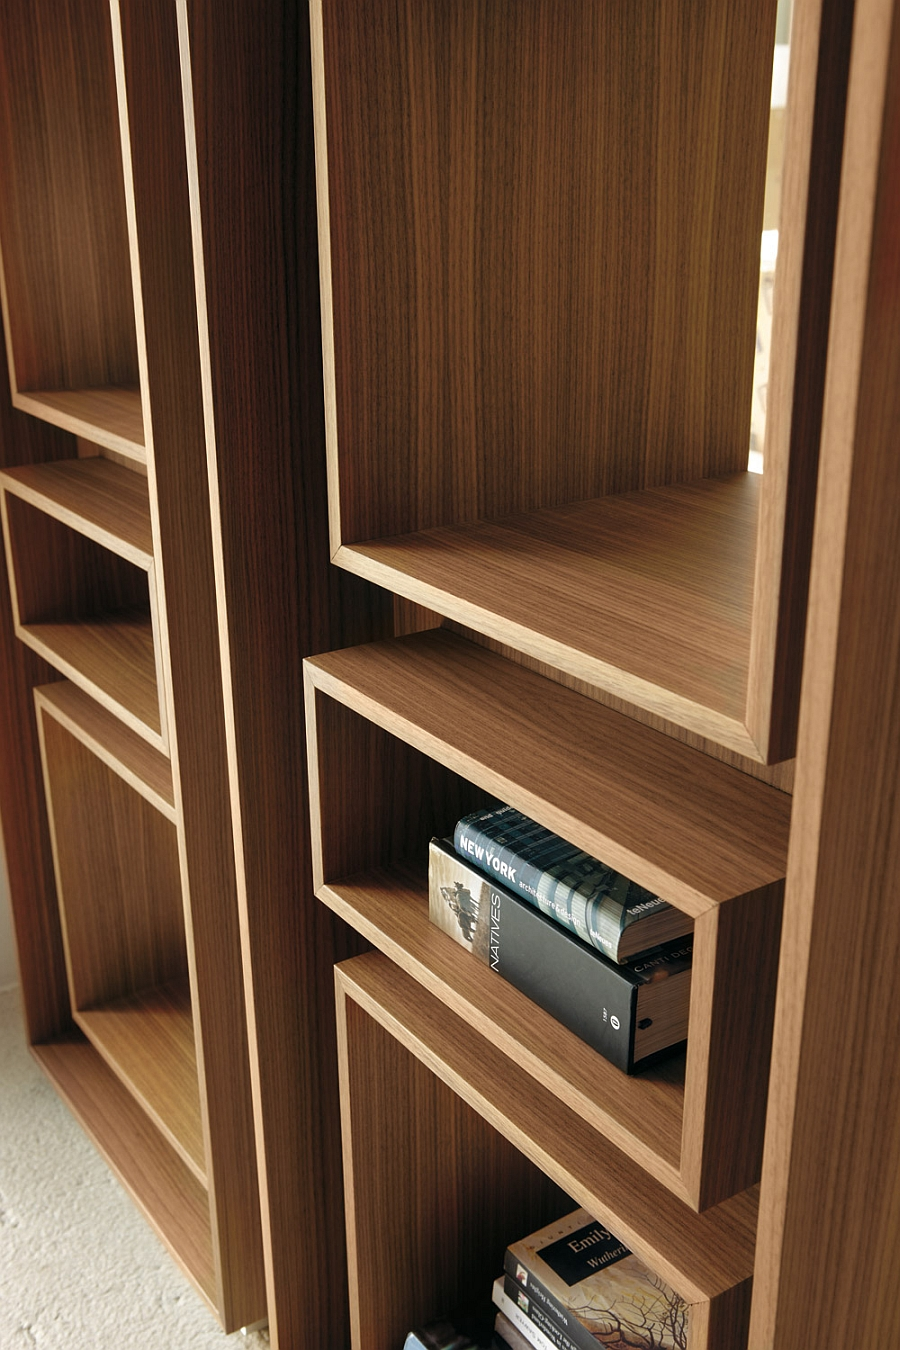 Bedside Table 5 Trendy Modern Bookshelves That Unleash Warmth Of Wood!